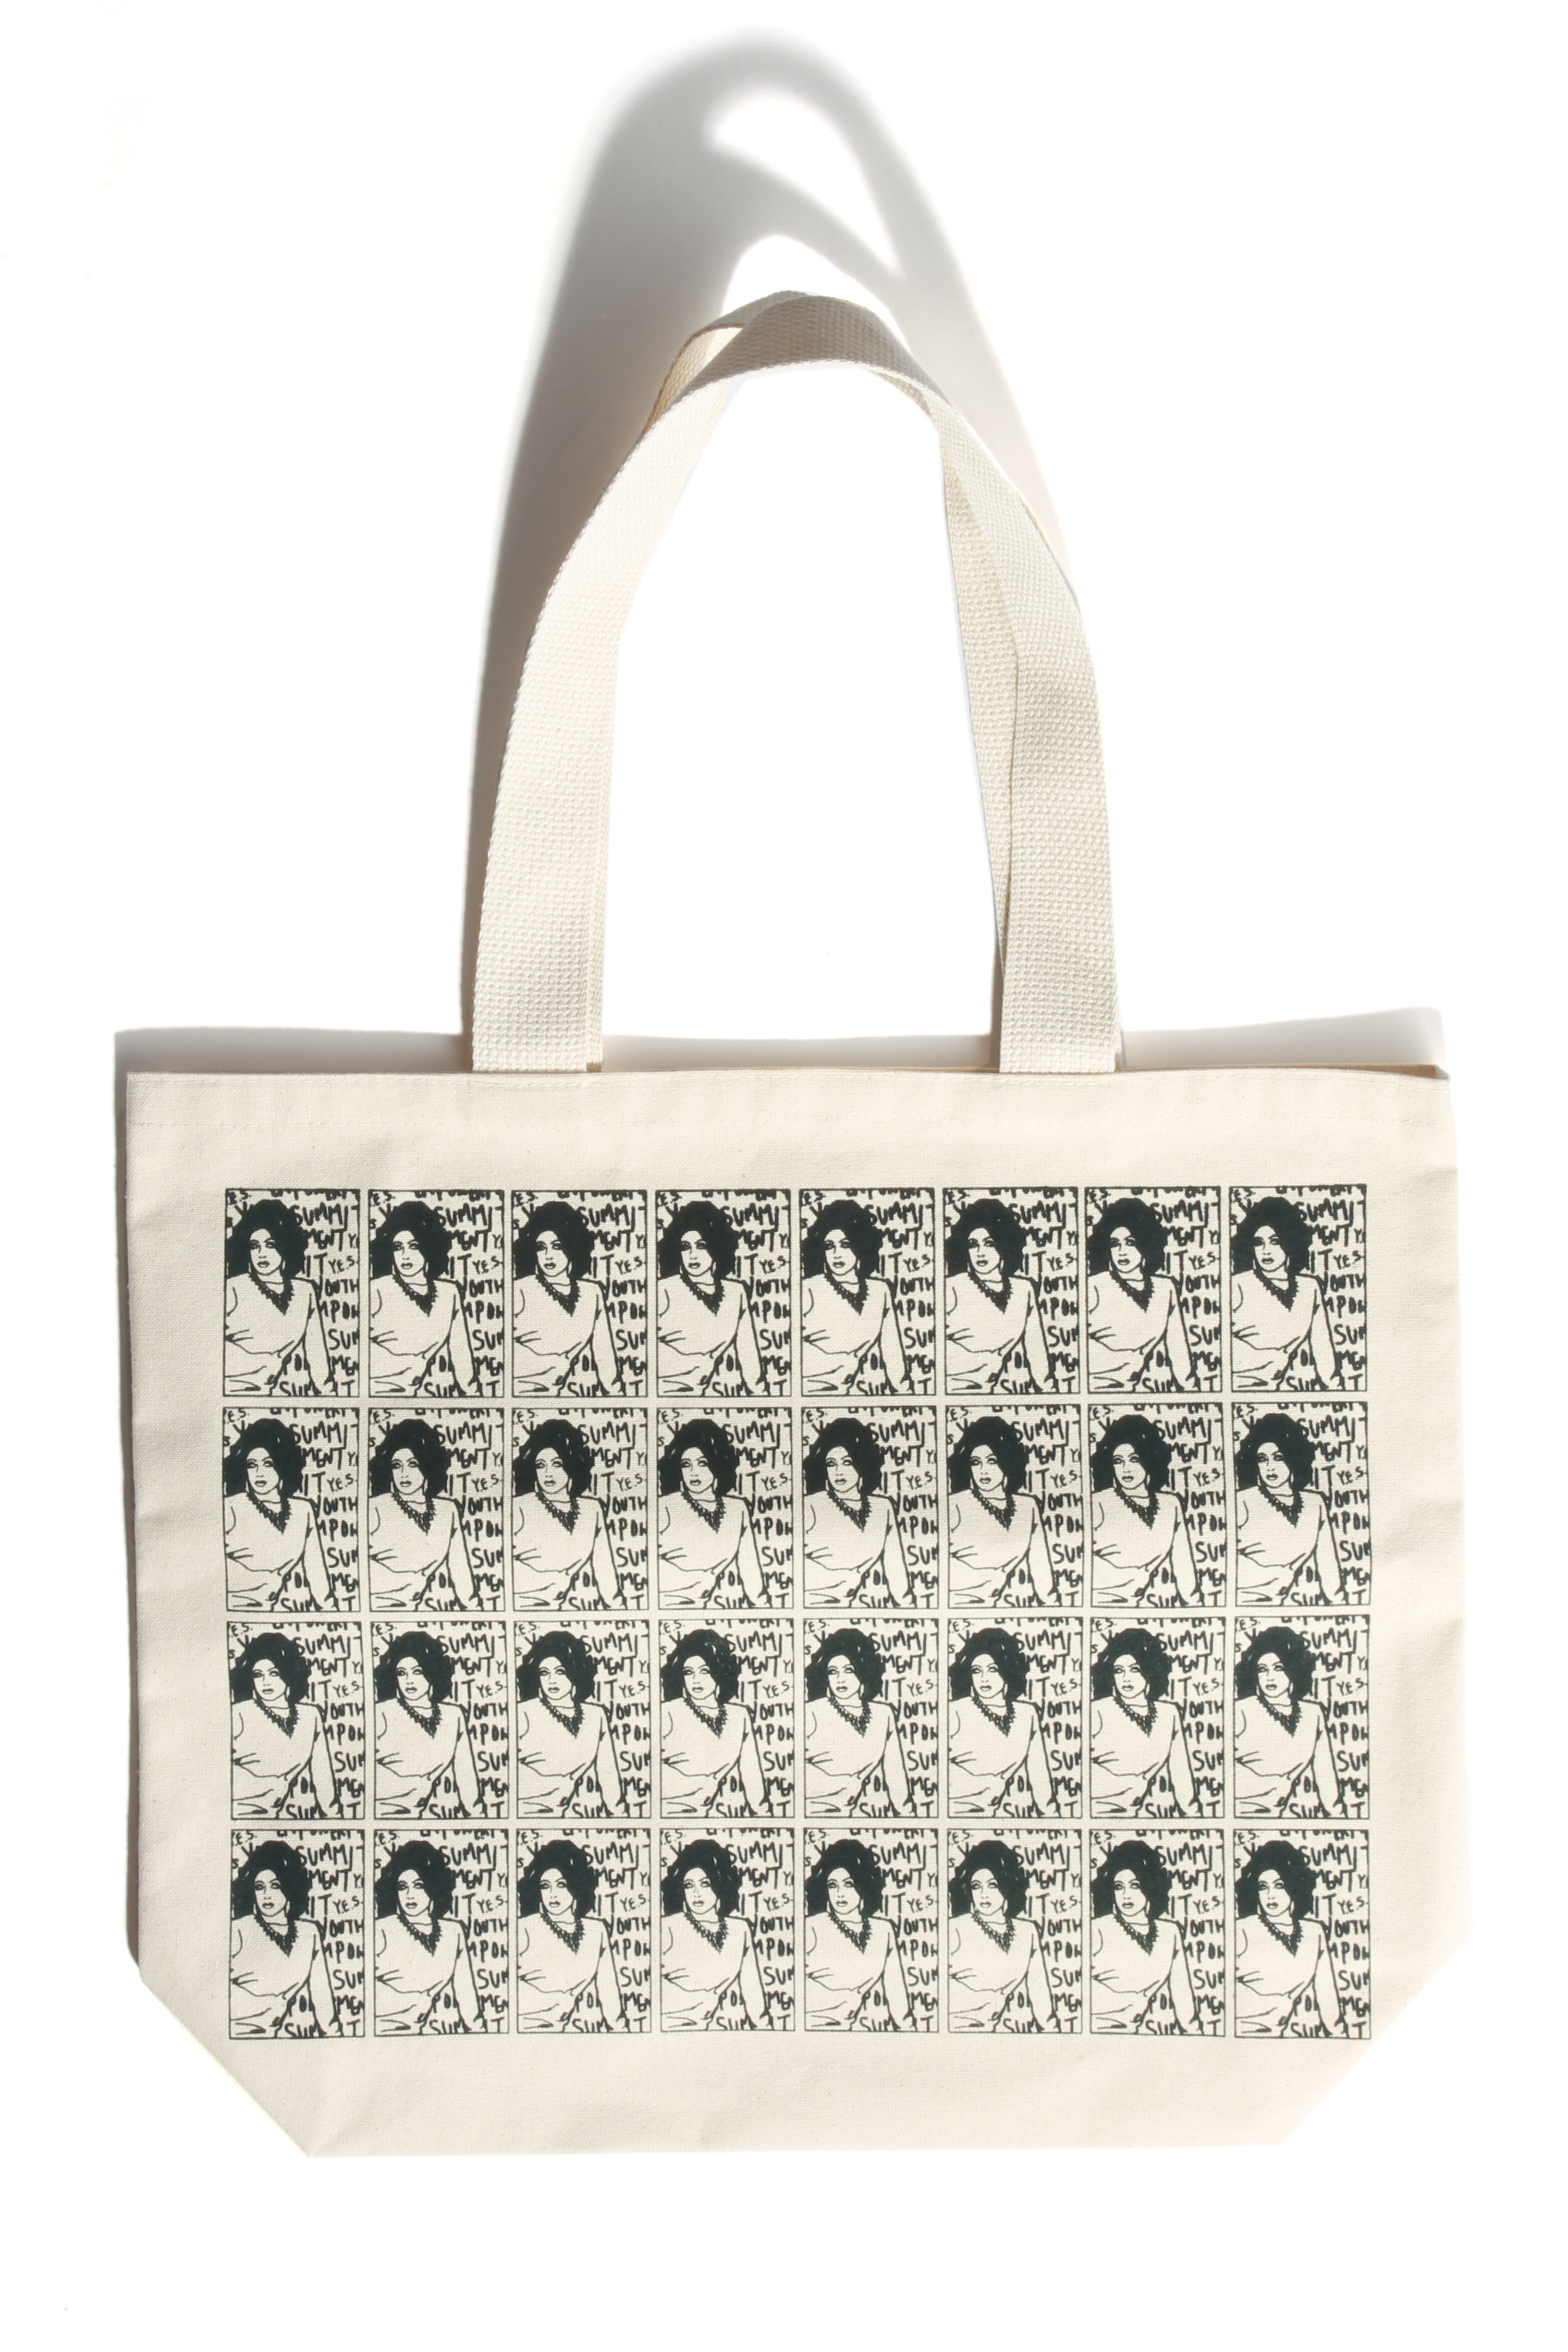 A tote designed by Yi-Hsuen Kuo.